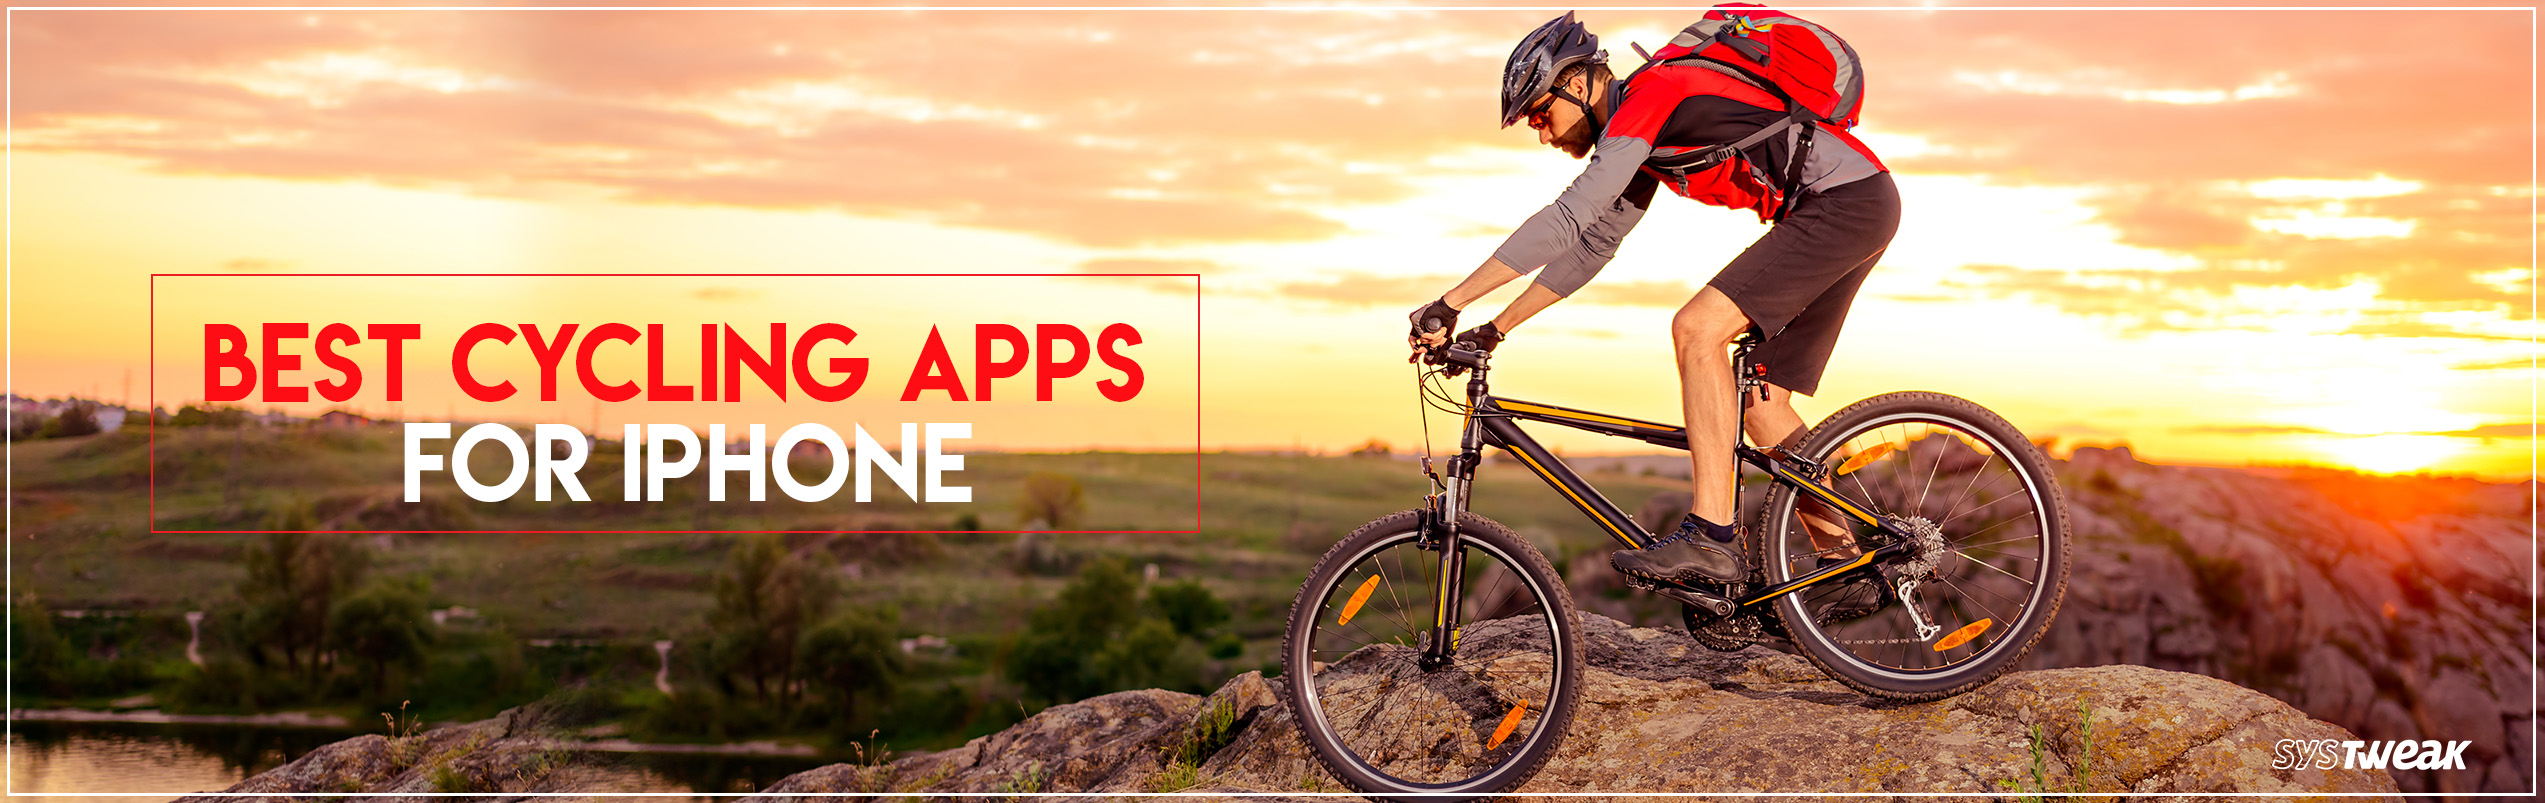 7 Best Cycling Apps for iPhone In 2018